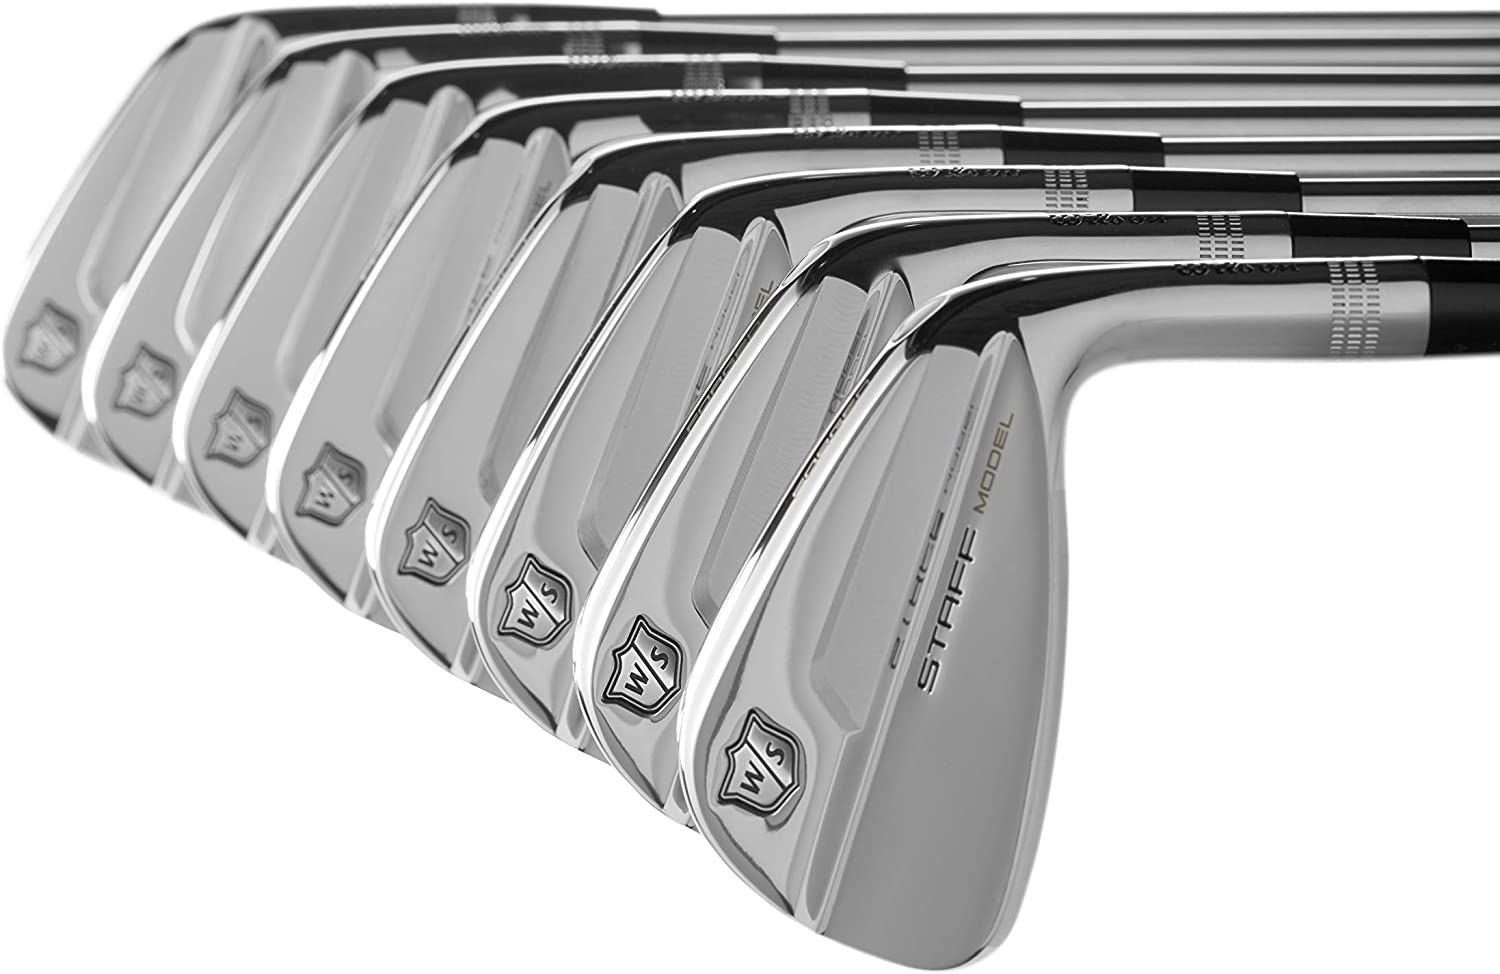 Wilson Staff Golf Men's Right Blades Set 8 piece Bombing new Limited time cheap sale work Handed